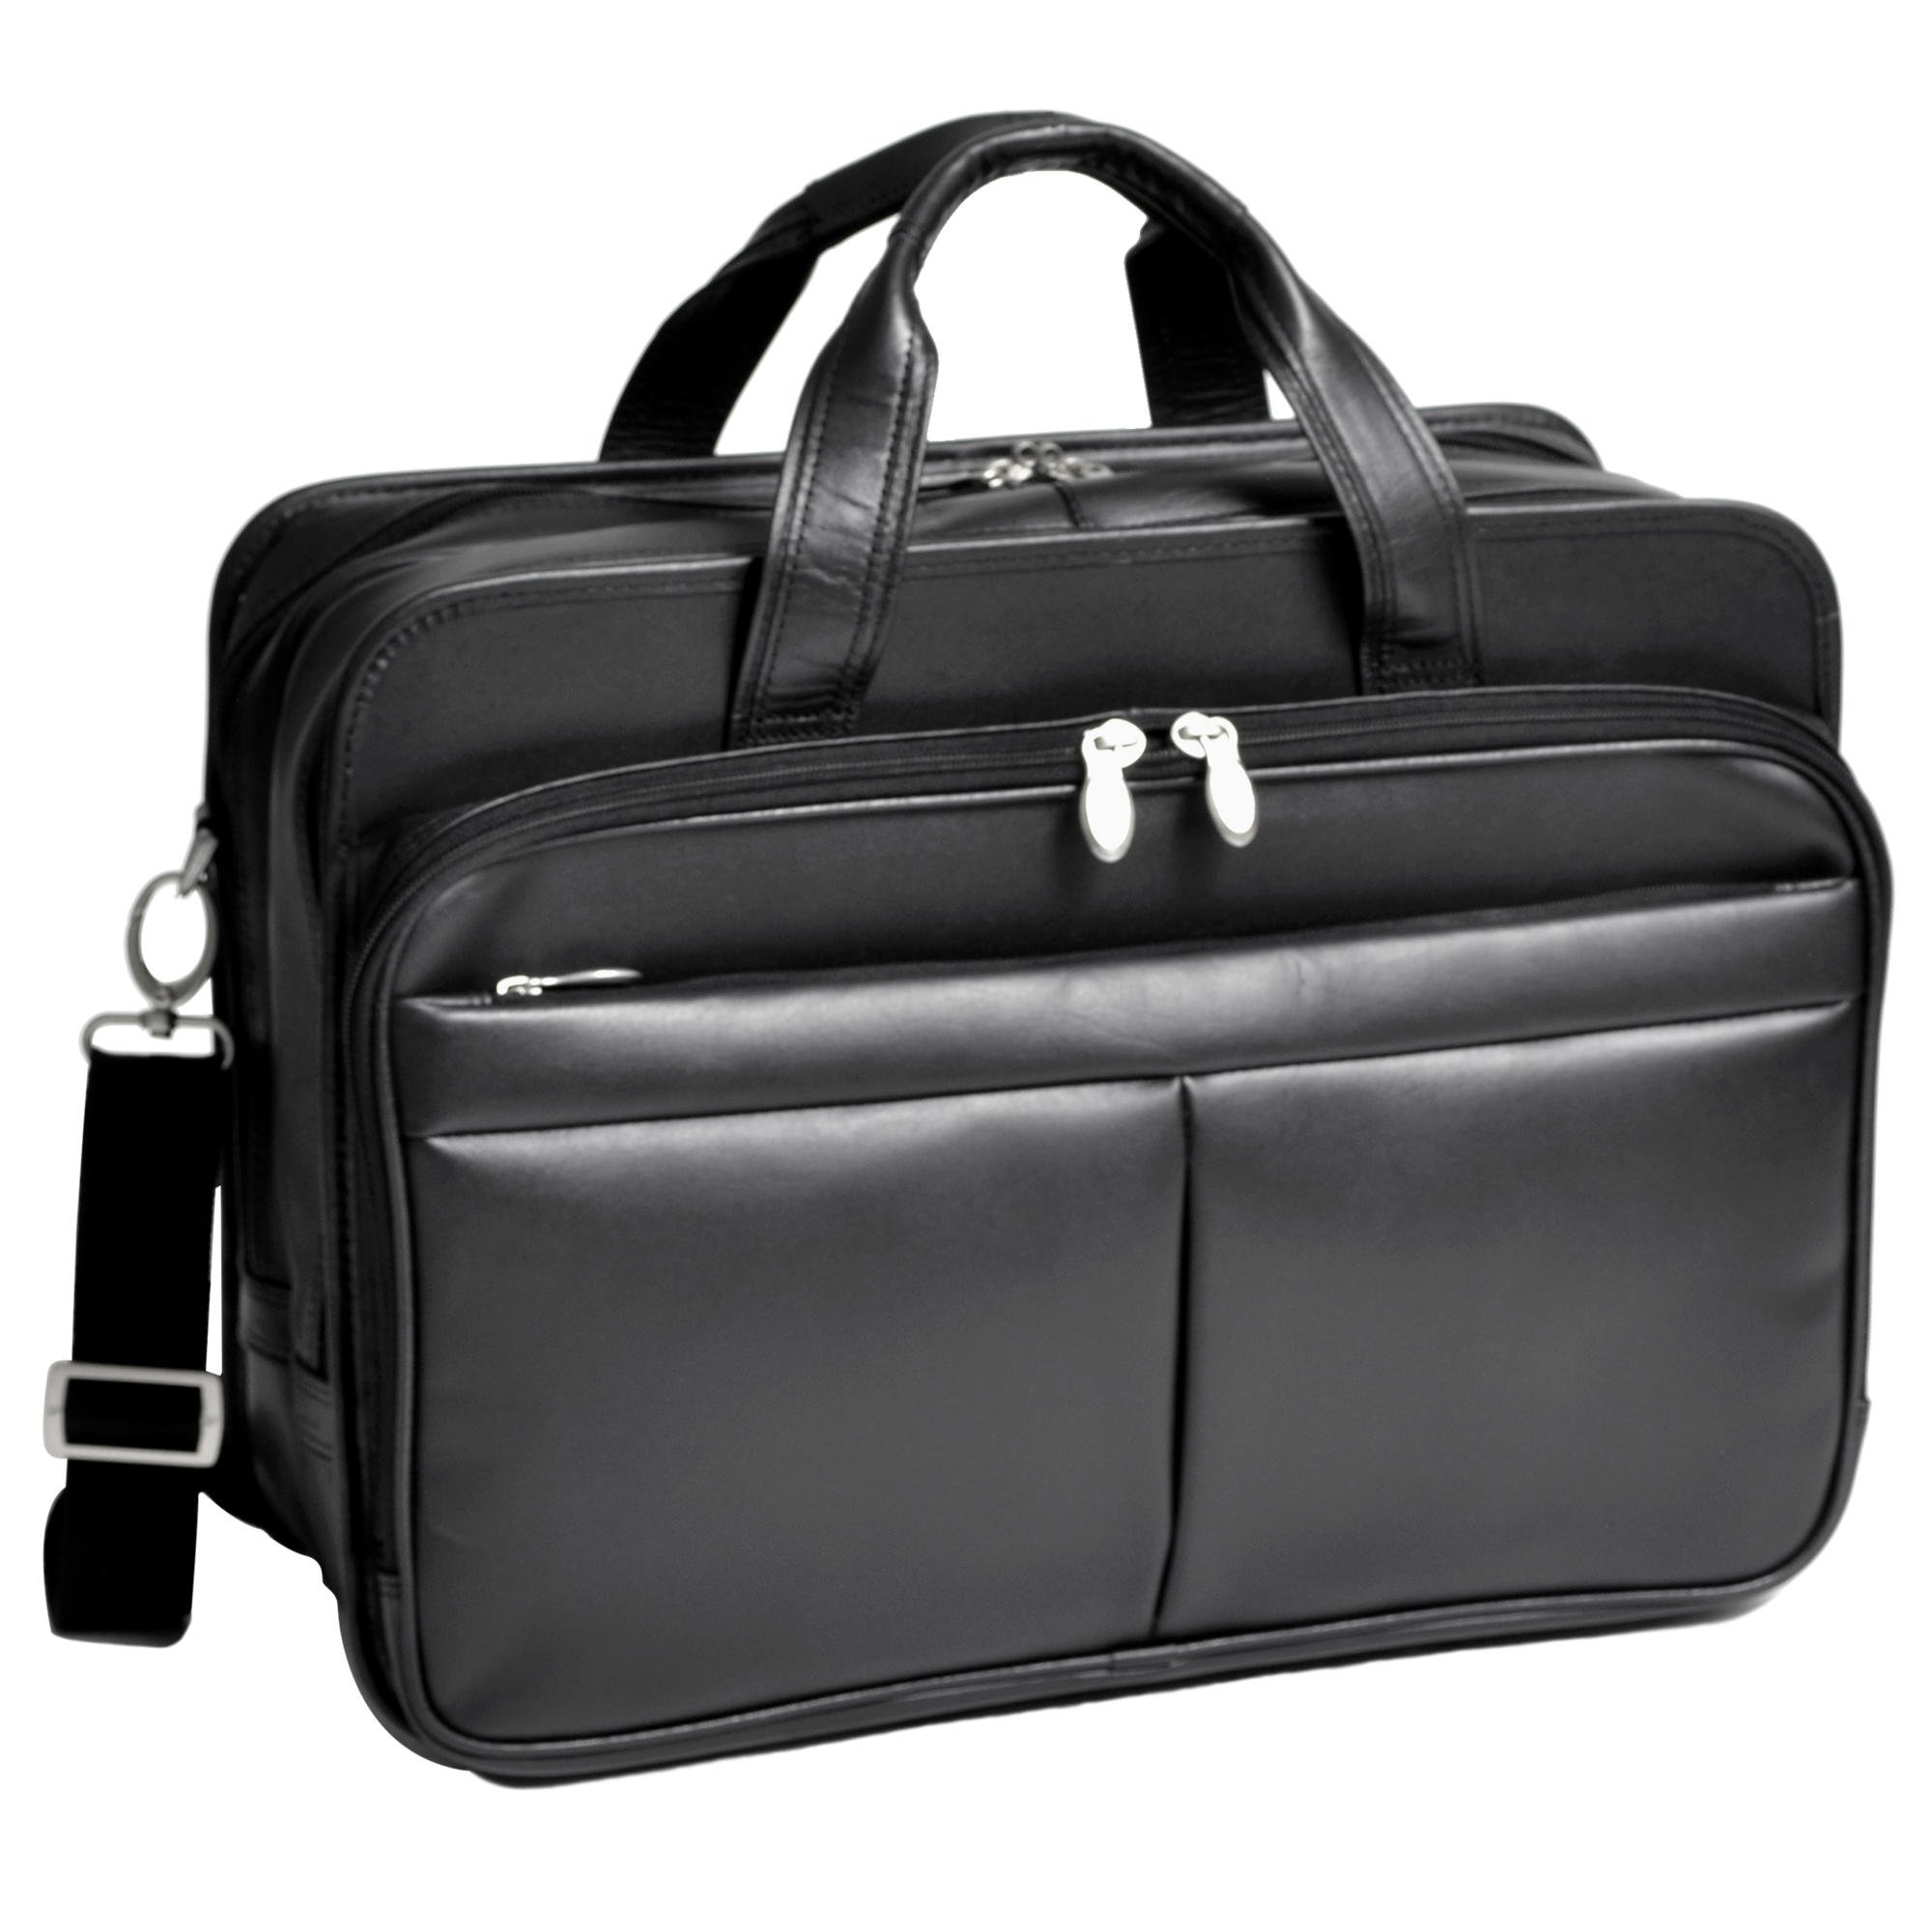 McKleinUSA WALTON 83985 Black Expandable Double Compartment Laptop Case w/ Removable Sleeve by McKleinUSA